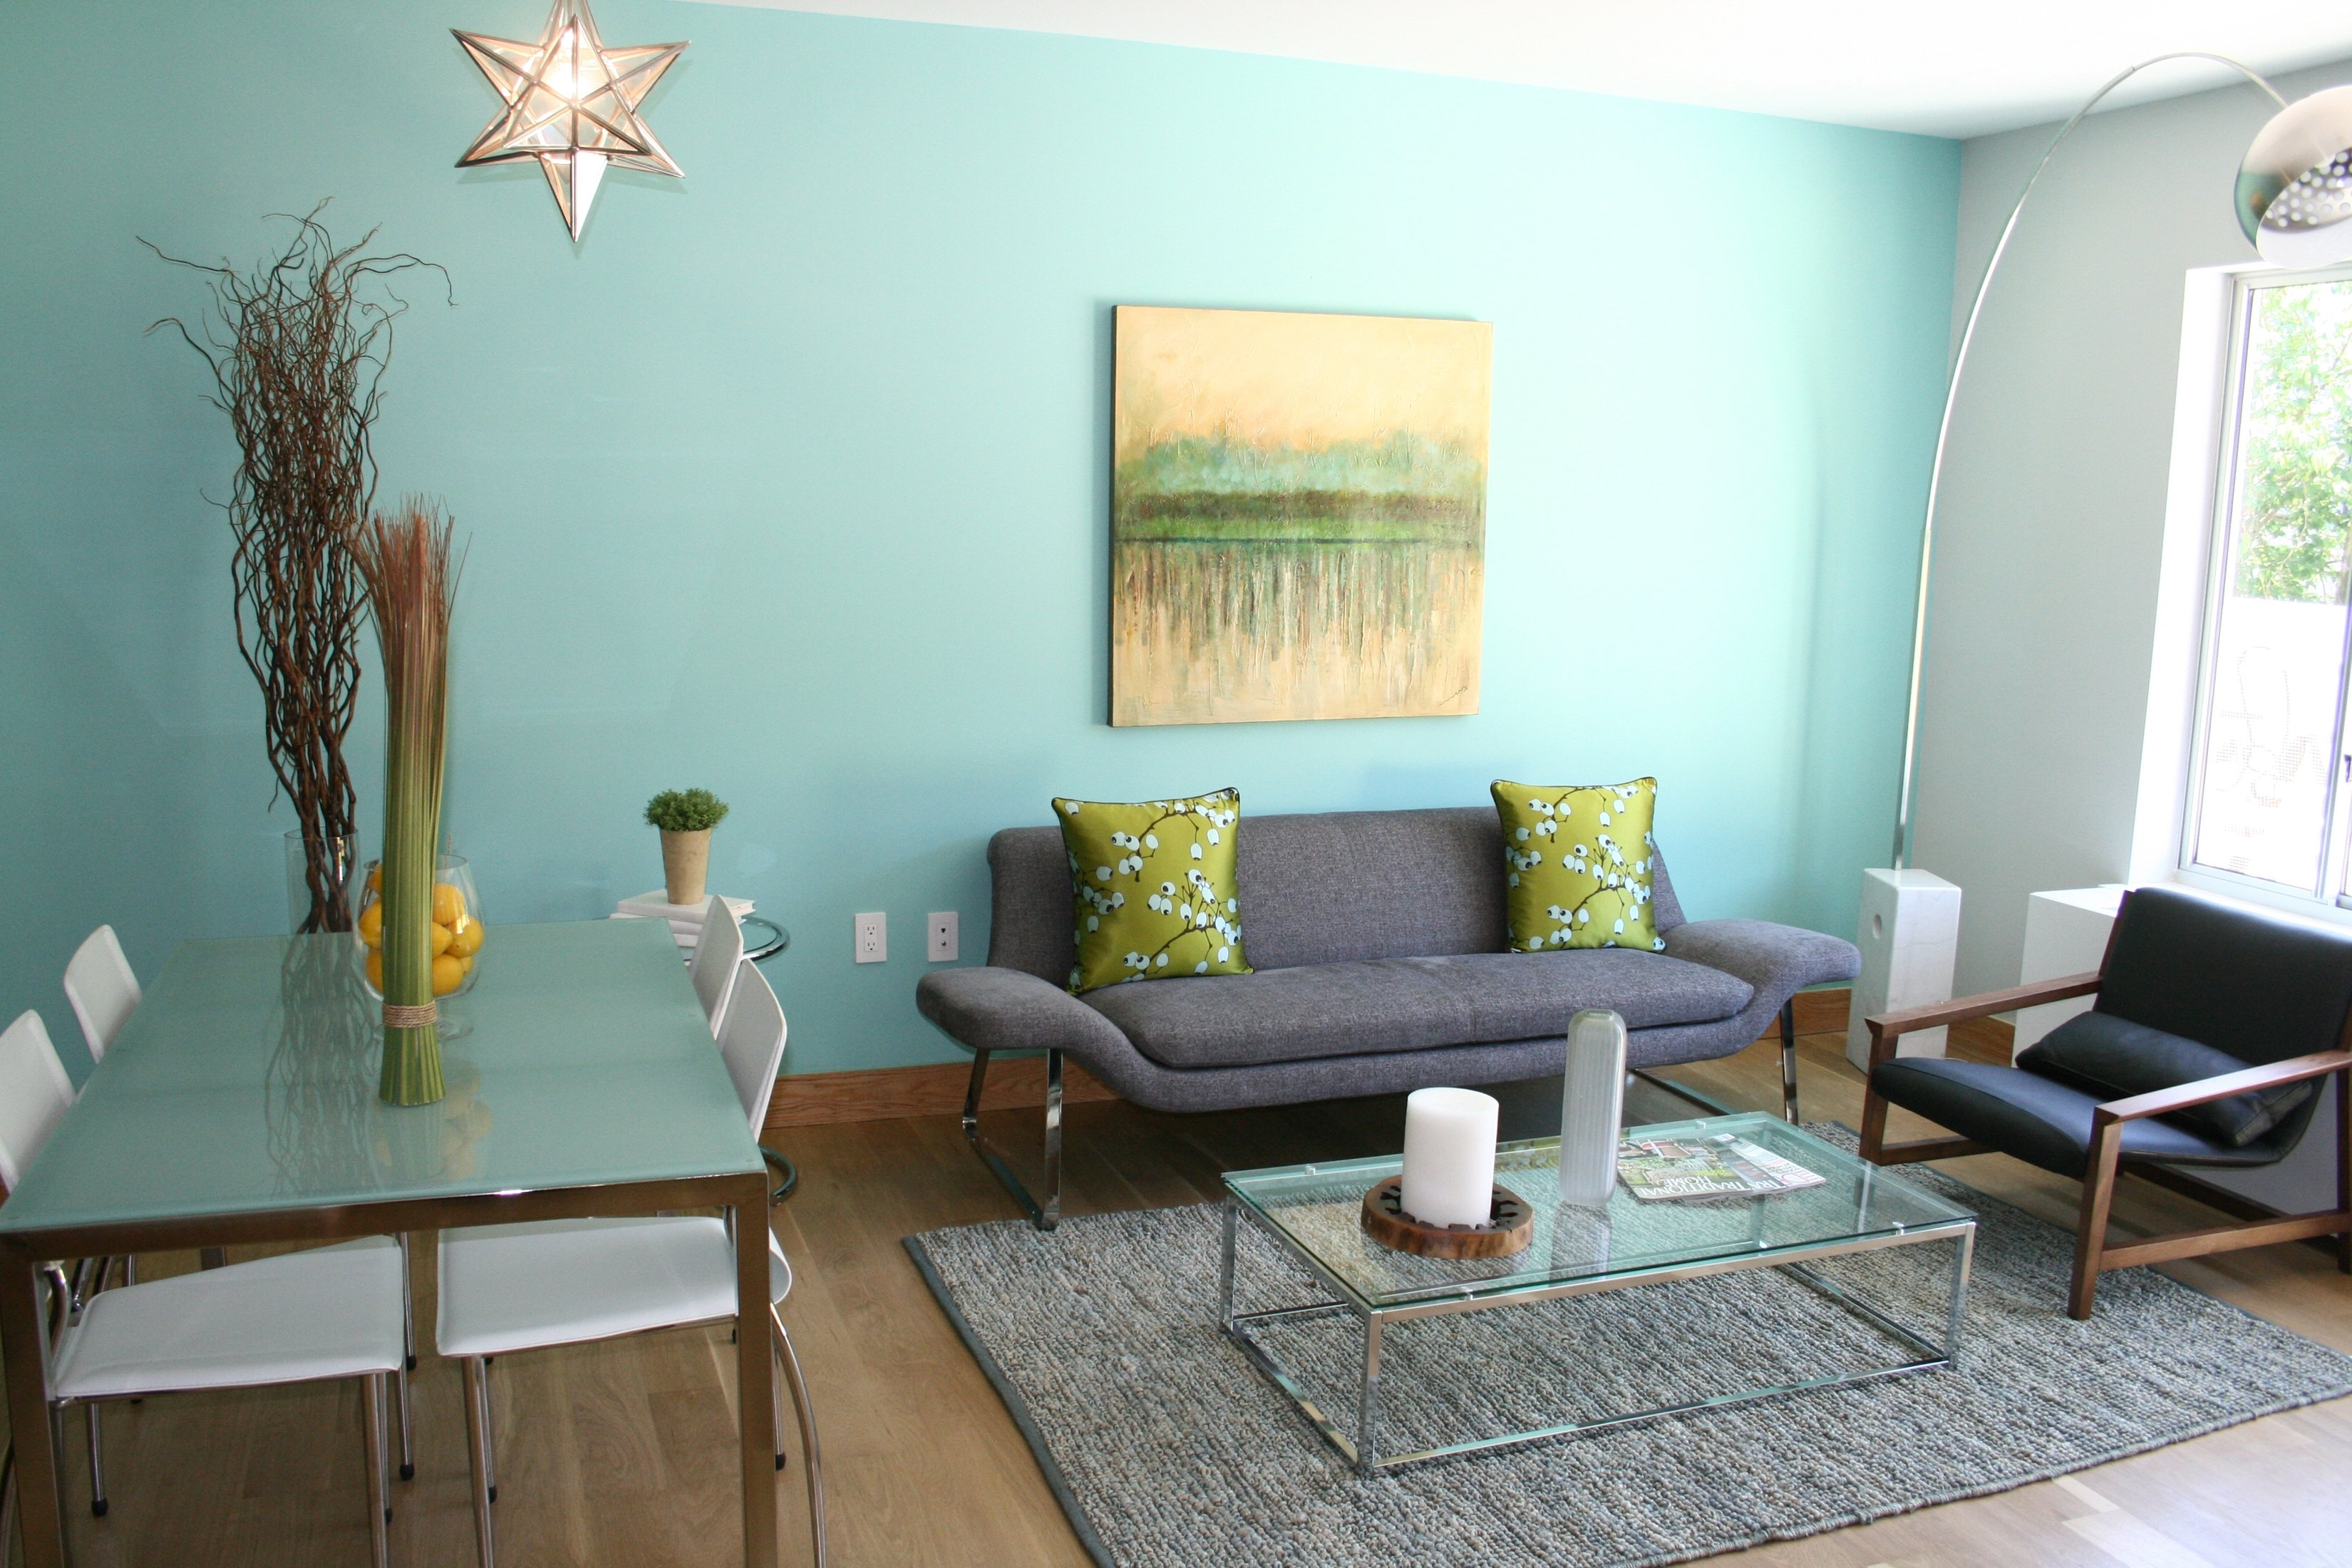 10 Pretty Cheap Decorating Ideas For Apartments small apartment living room ideas of apartment living room living 2021